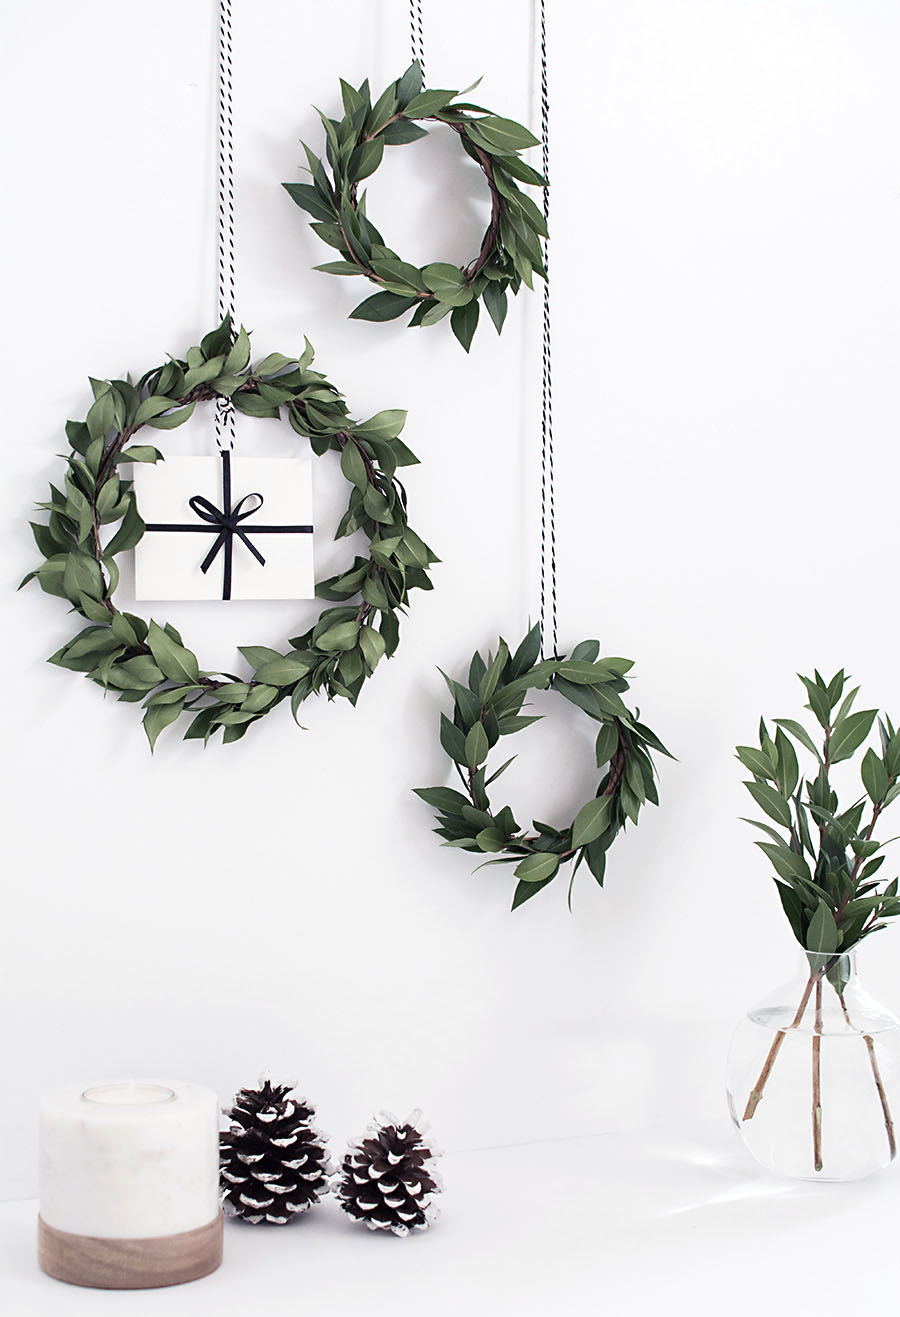 gift card mini wreath DIY